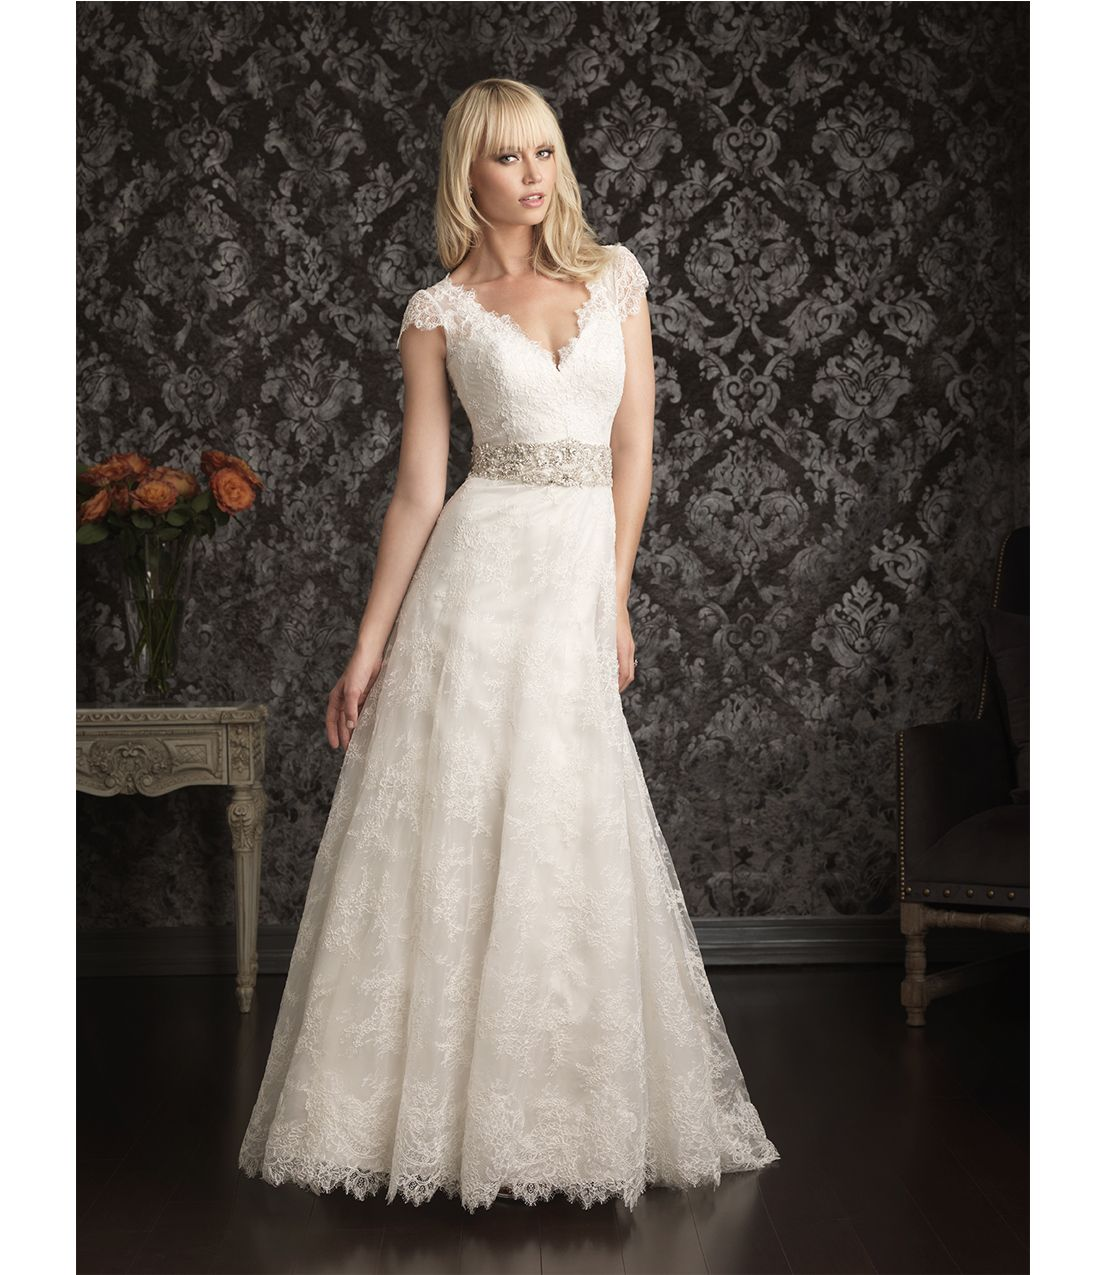 Details about New White/Ivory Tulle Wedding Dress Bridal Gown ...